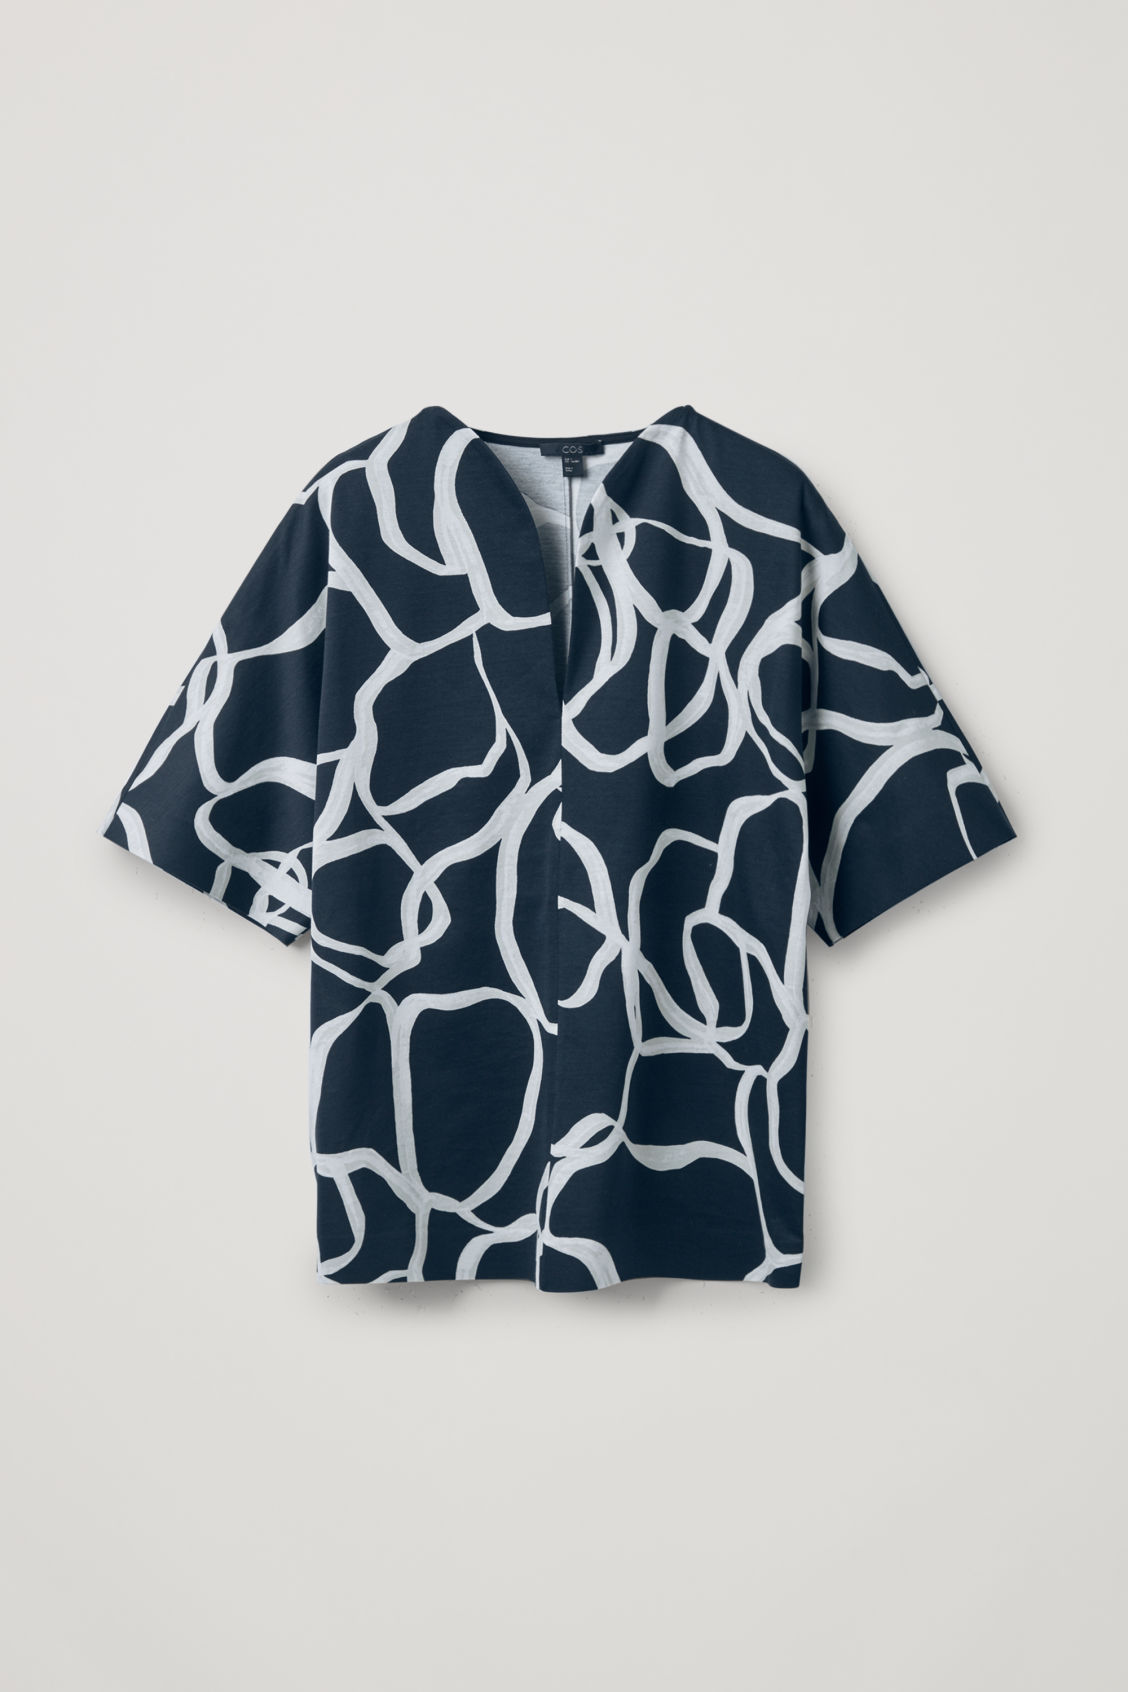 Cos Printed Top With Rounded Neck In Black